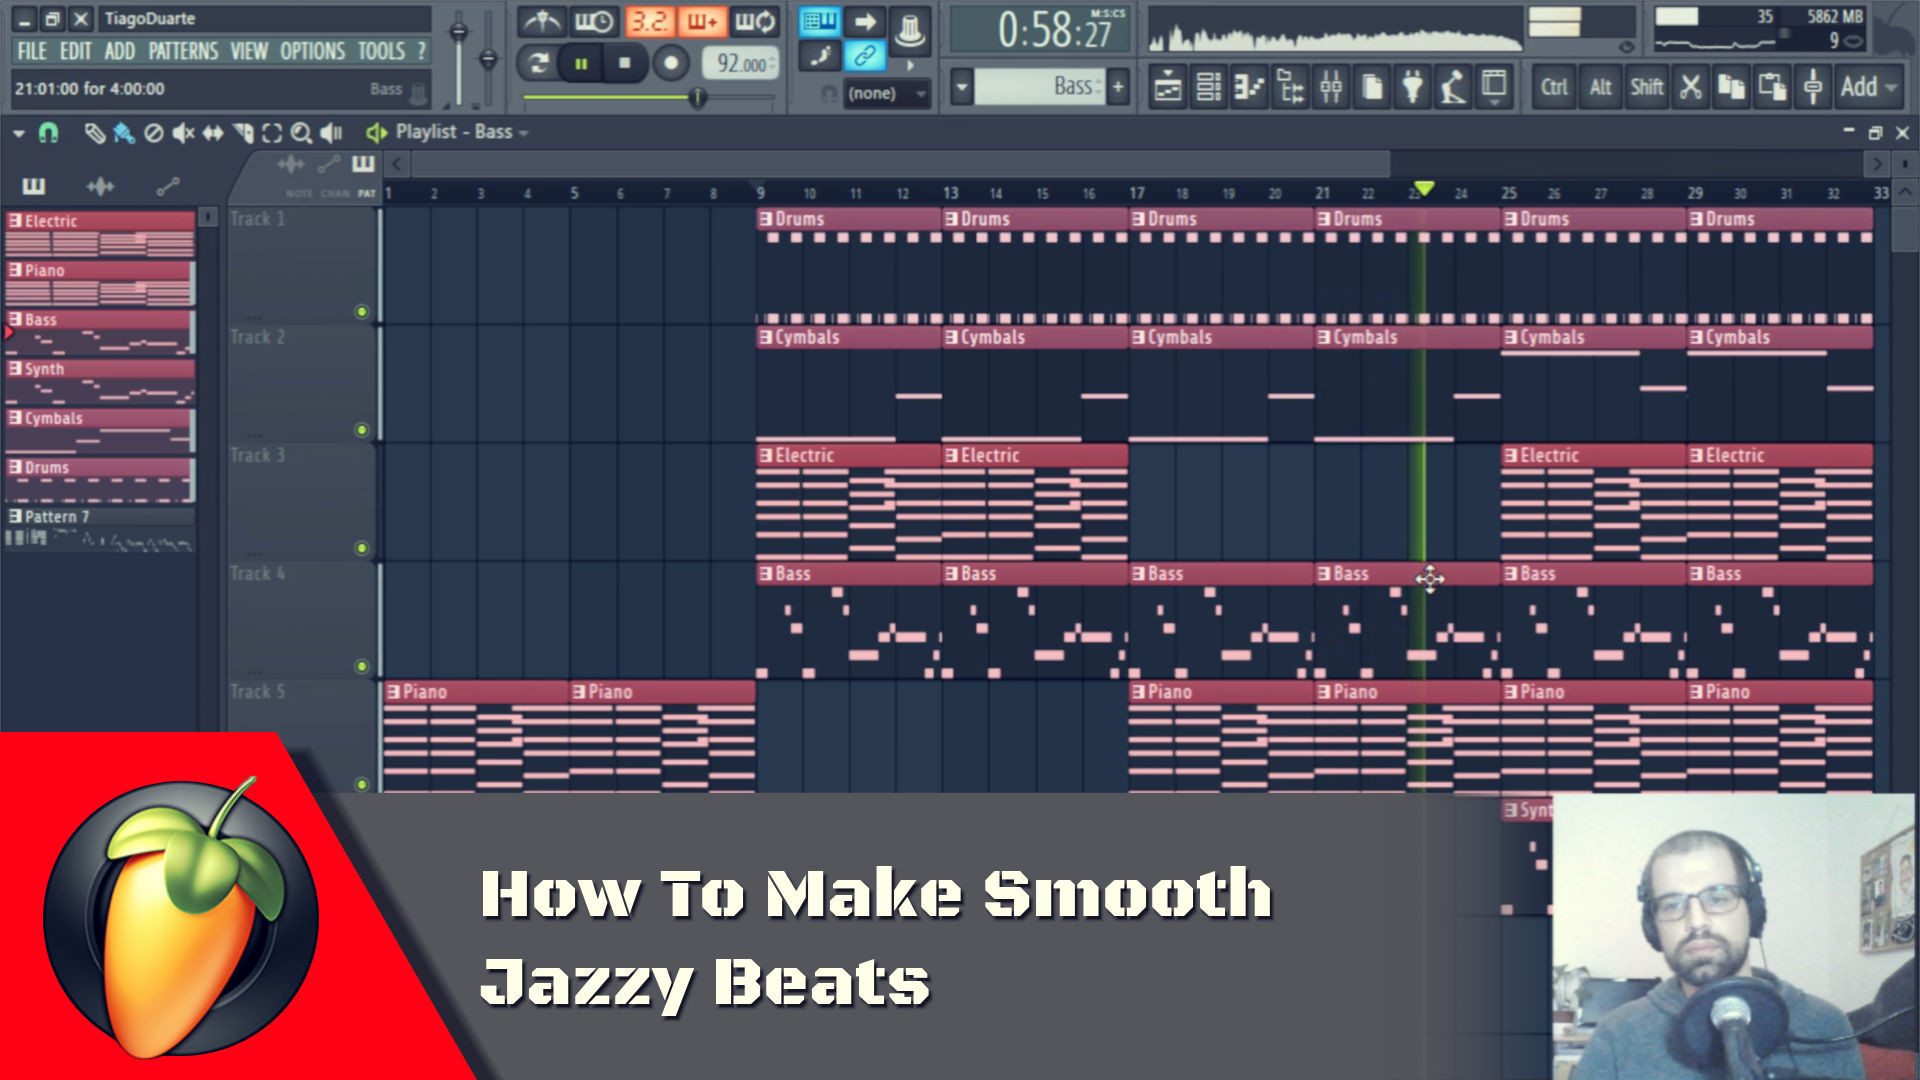 How To Make Smooth Jazzy Beats